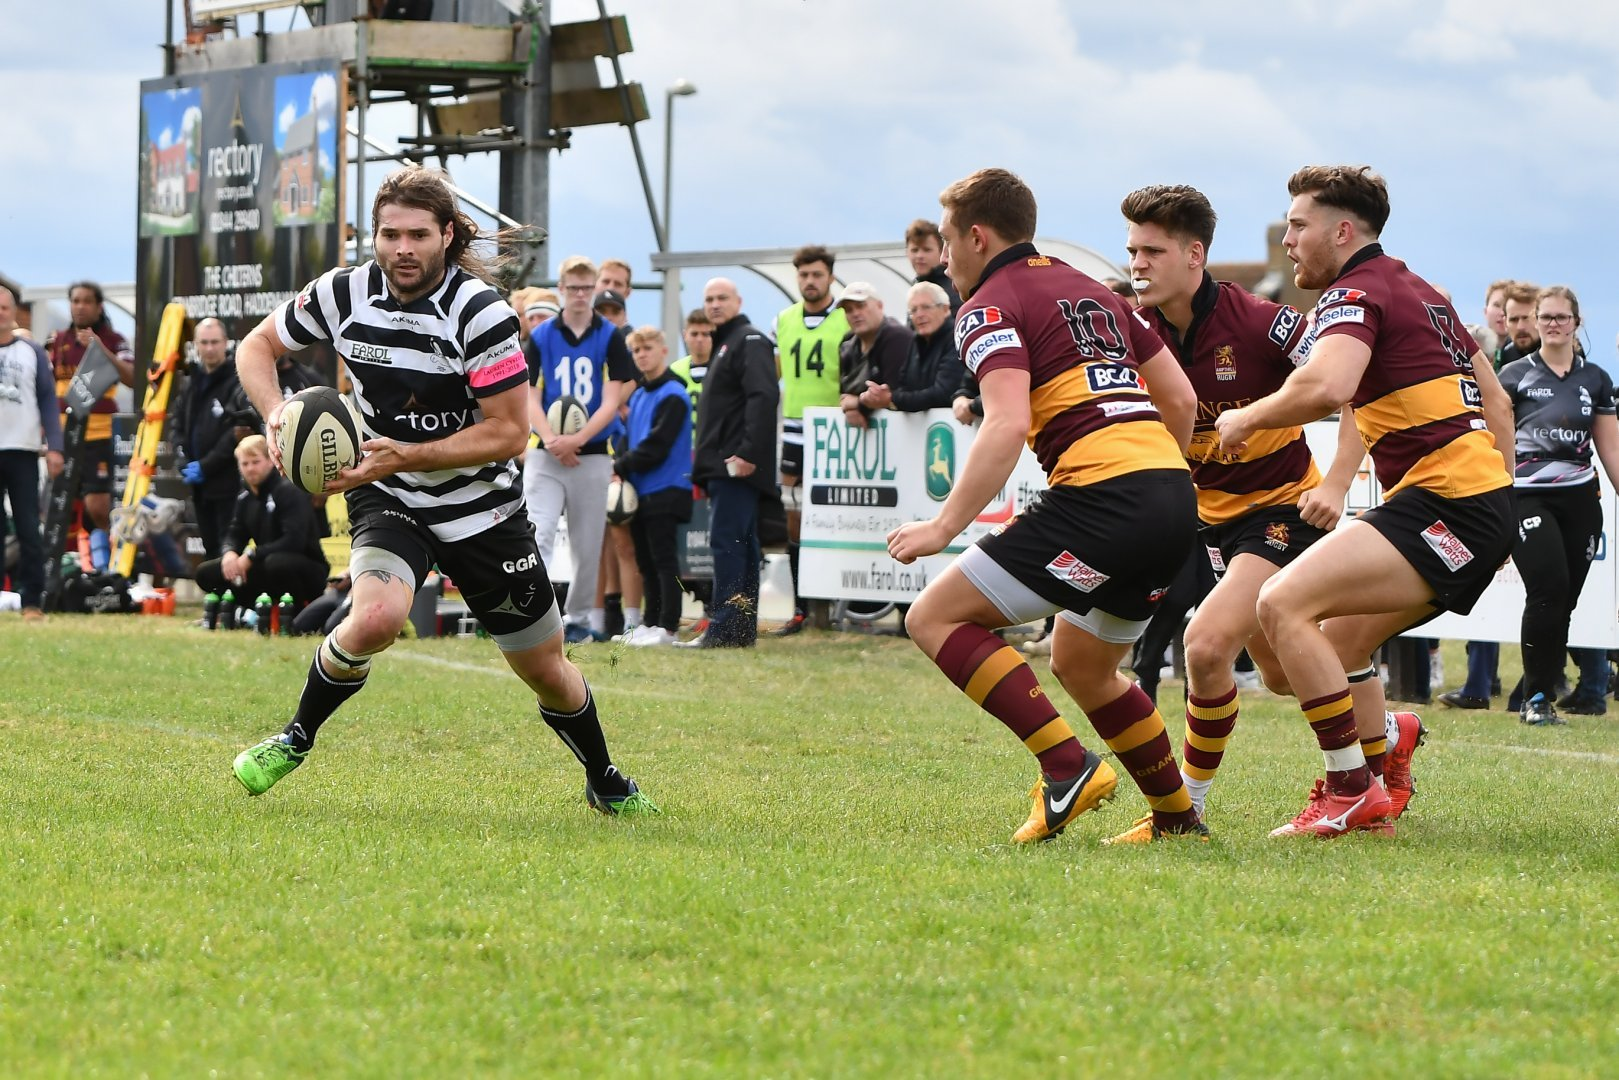 KNOCK: Kieran Goss is set to start at full back for Chinnor against Caldy in National League 1, but faces a late fitness test Picture: Simon Cooper